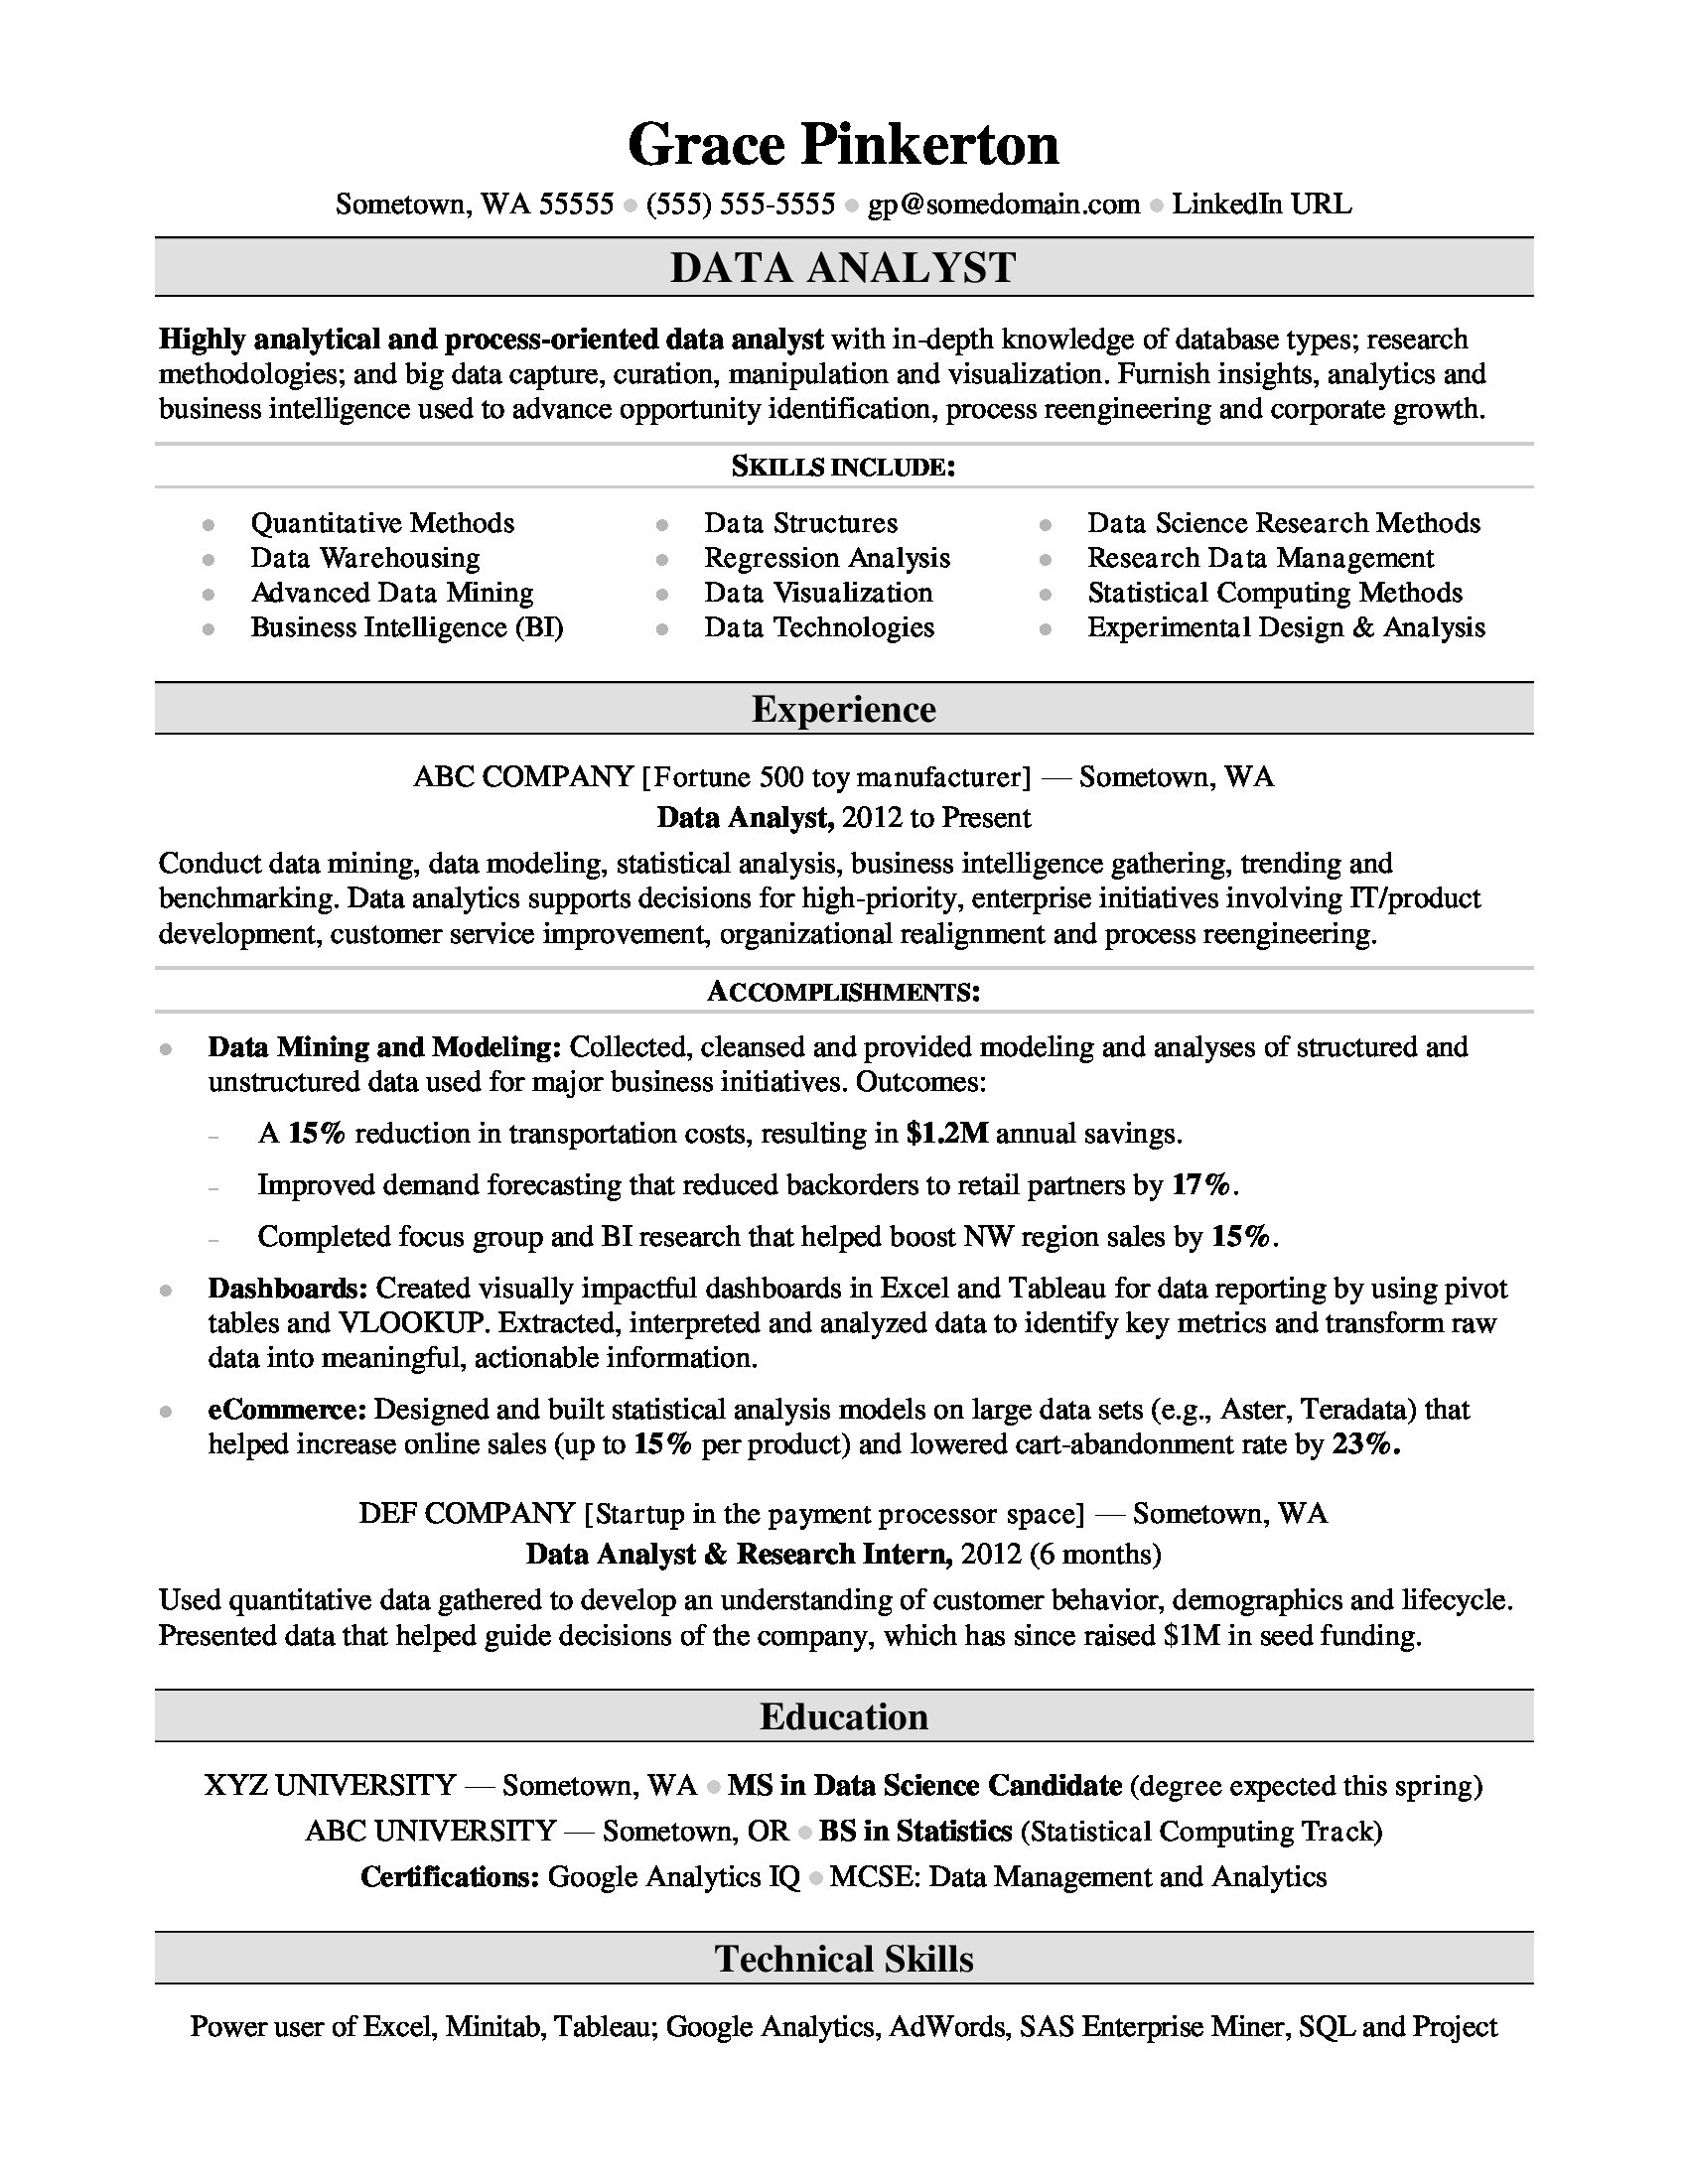 Data analyst resume sample monster data analyst resume template flashek Gallery